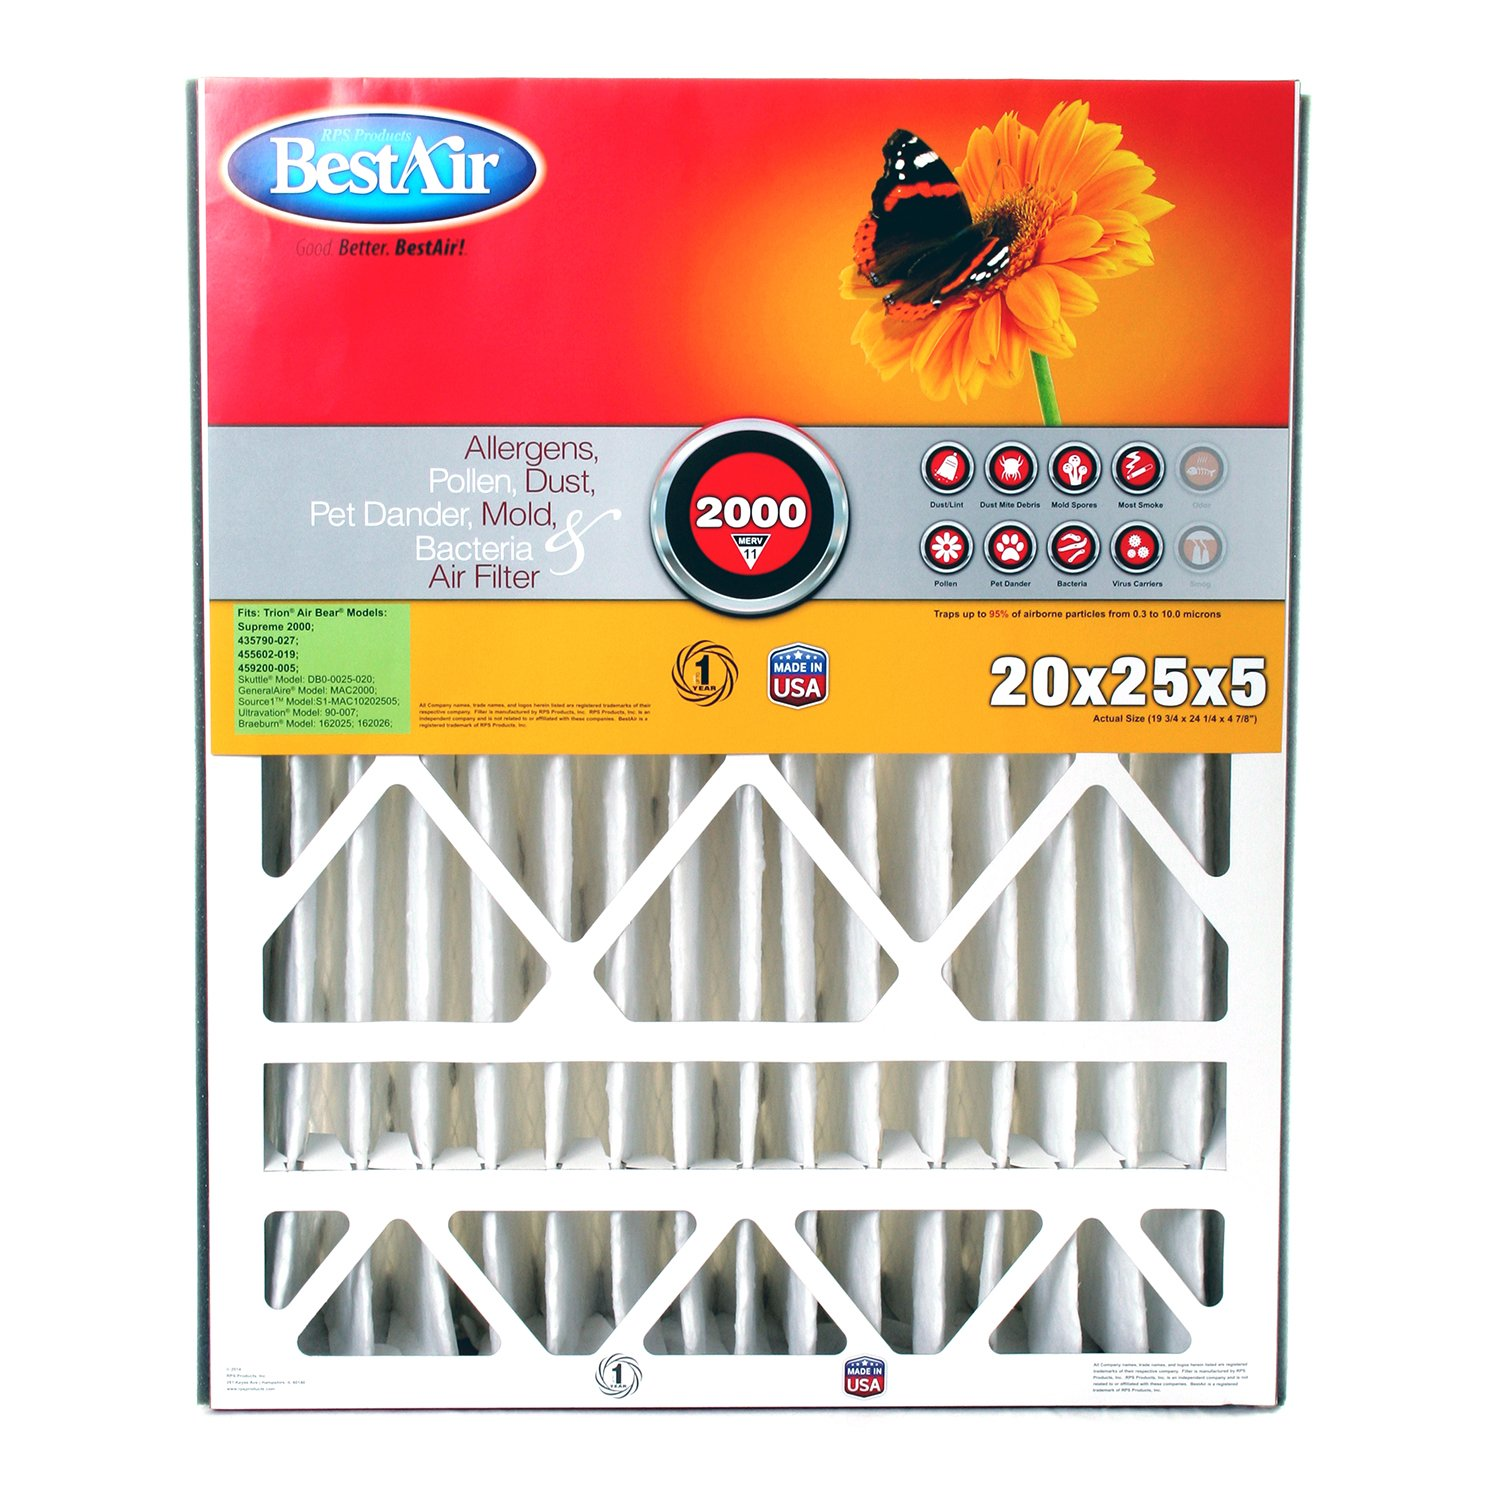 BestAir AB2025-11R Furnace Filter, 20'' x 25'' x 5'', Trion Air Bear Replacement, MERV 11